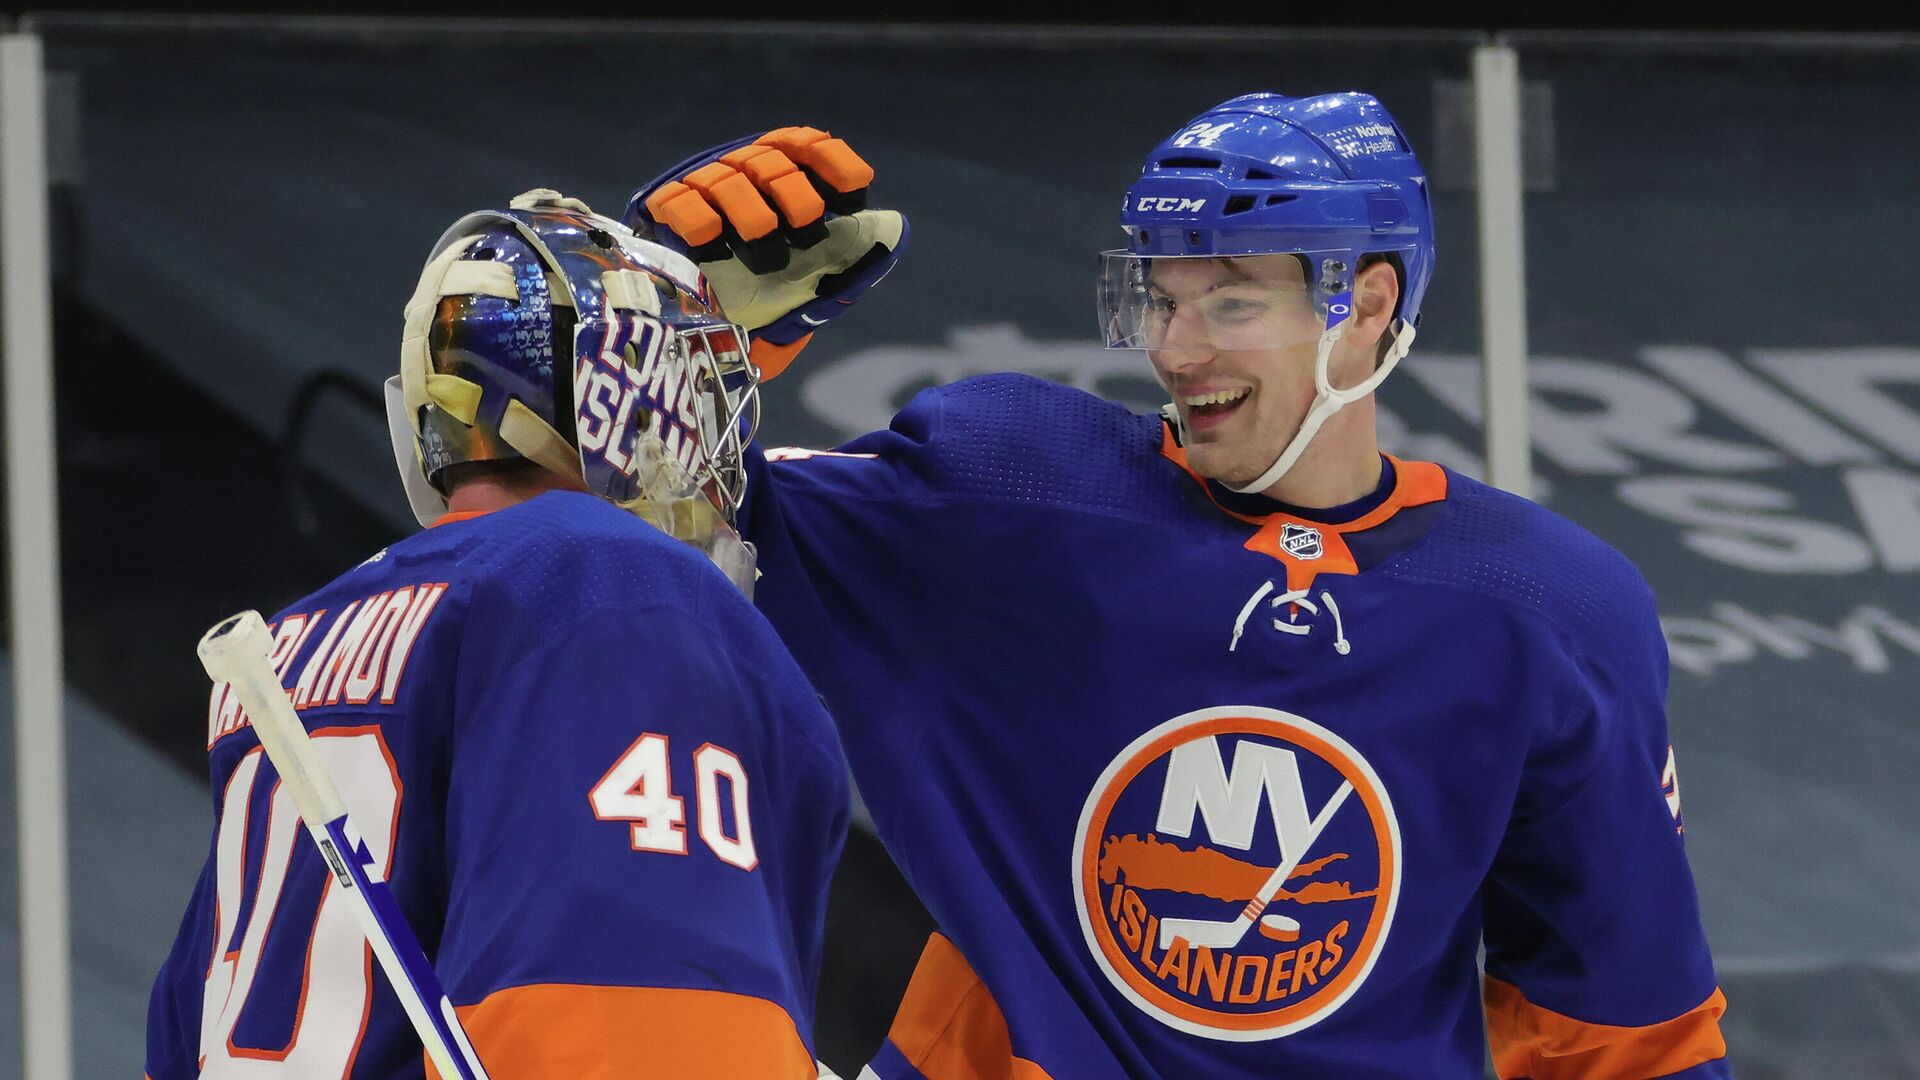 UNIONDALE, NEW YORK - JANUARY 18: Semyon Varlamov #40 and Scott Mayfield #24 of the New York Islanders celebrate a 1-0 shutout against the Boston Bruins at the Nassau Coliseum on January 18, 2021 in Uniondale, New York.   Bruce Bennett/Getty Images/AFP - РИА Новости, 1920, 19.01.2021